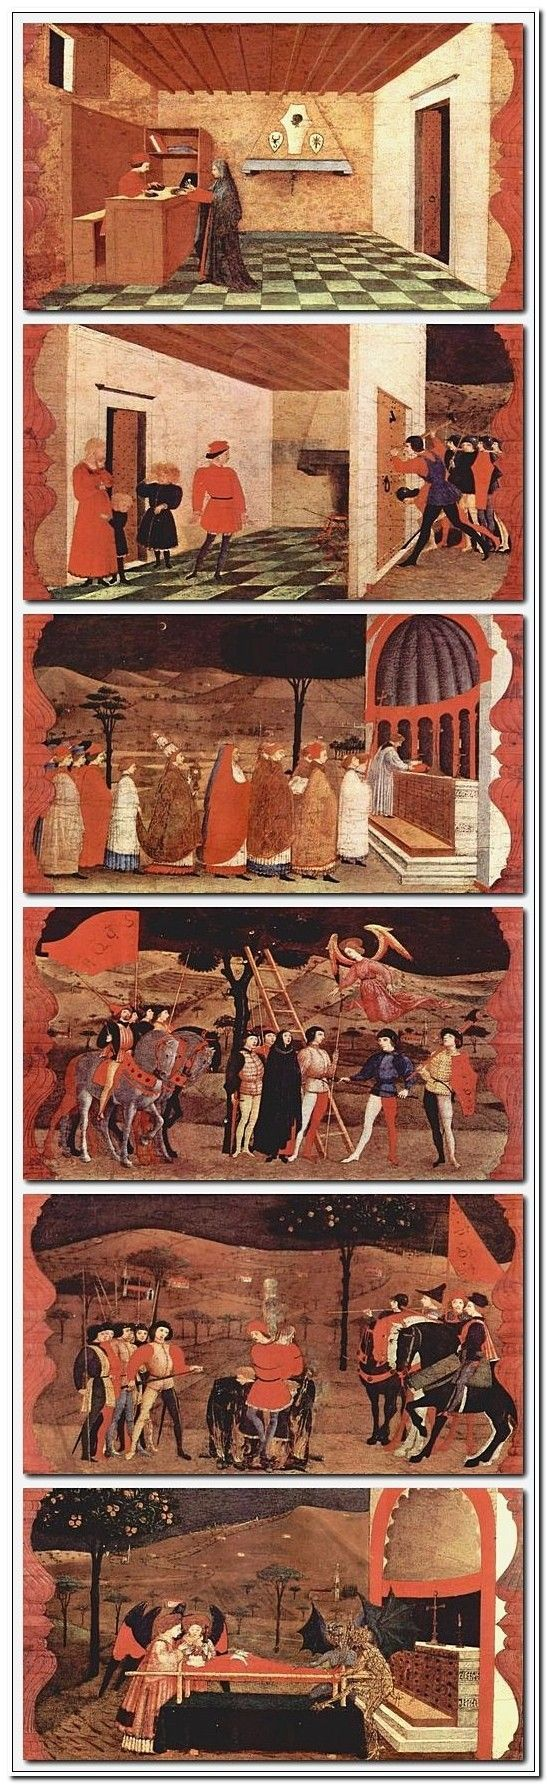 paolo uccello miracle of the desecrated host all - Cerca con Google